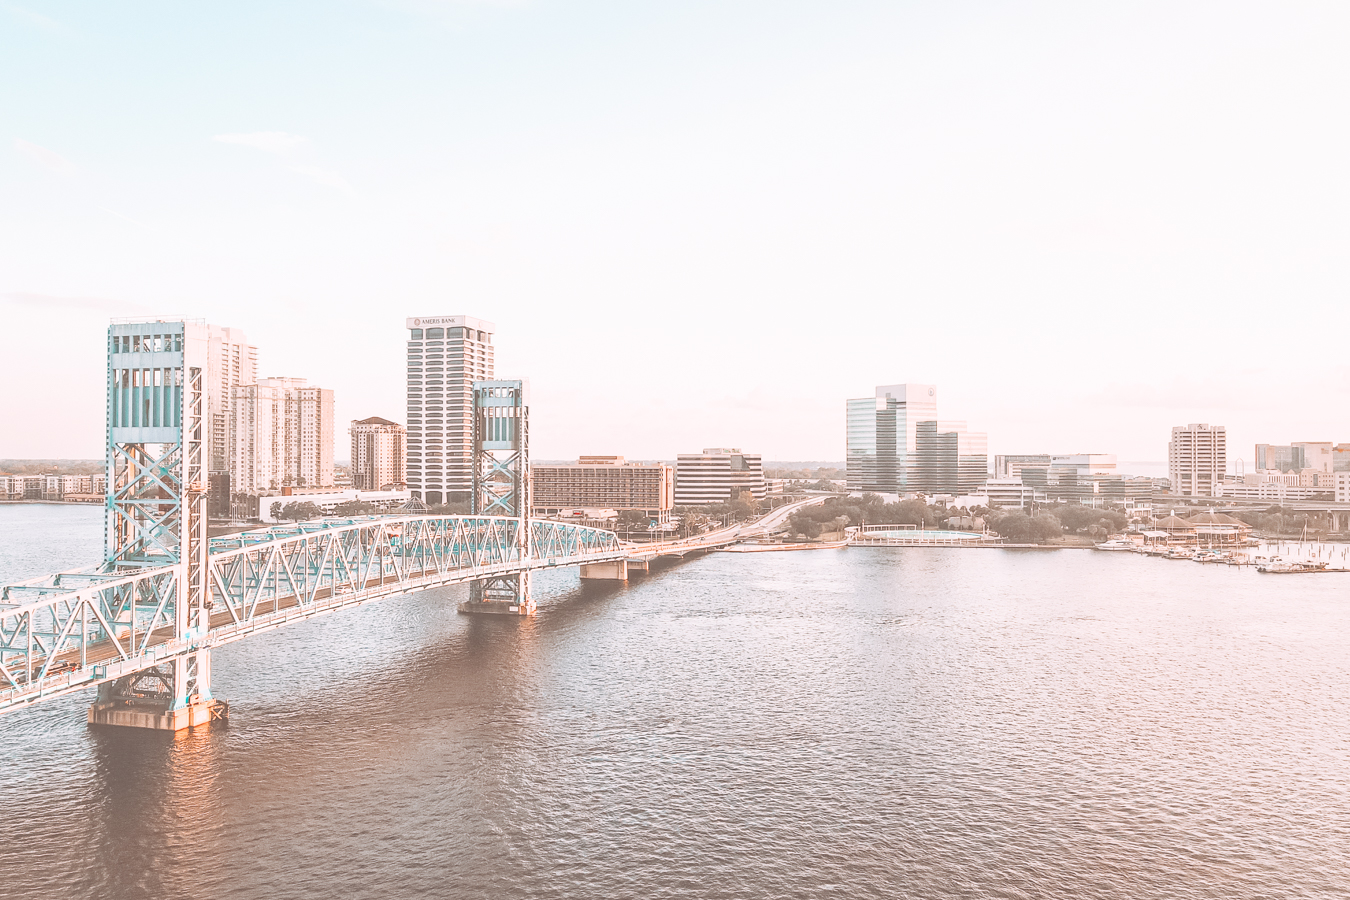 A view of Jacksonville